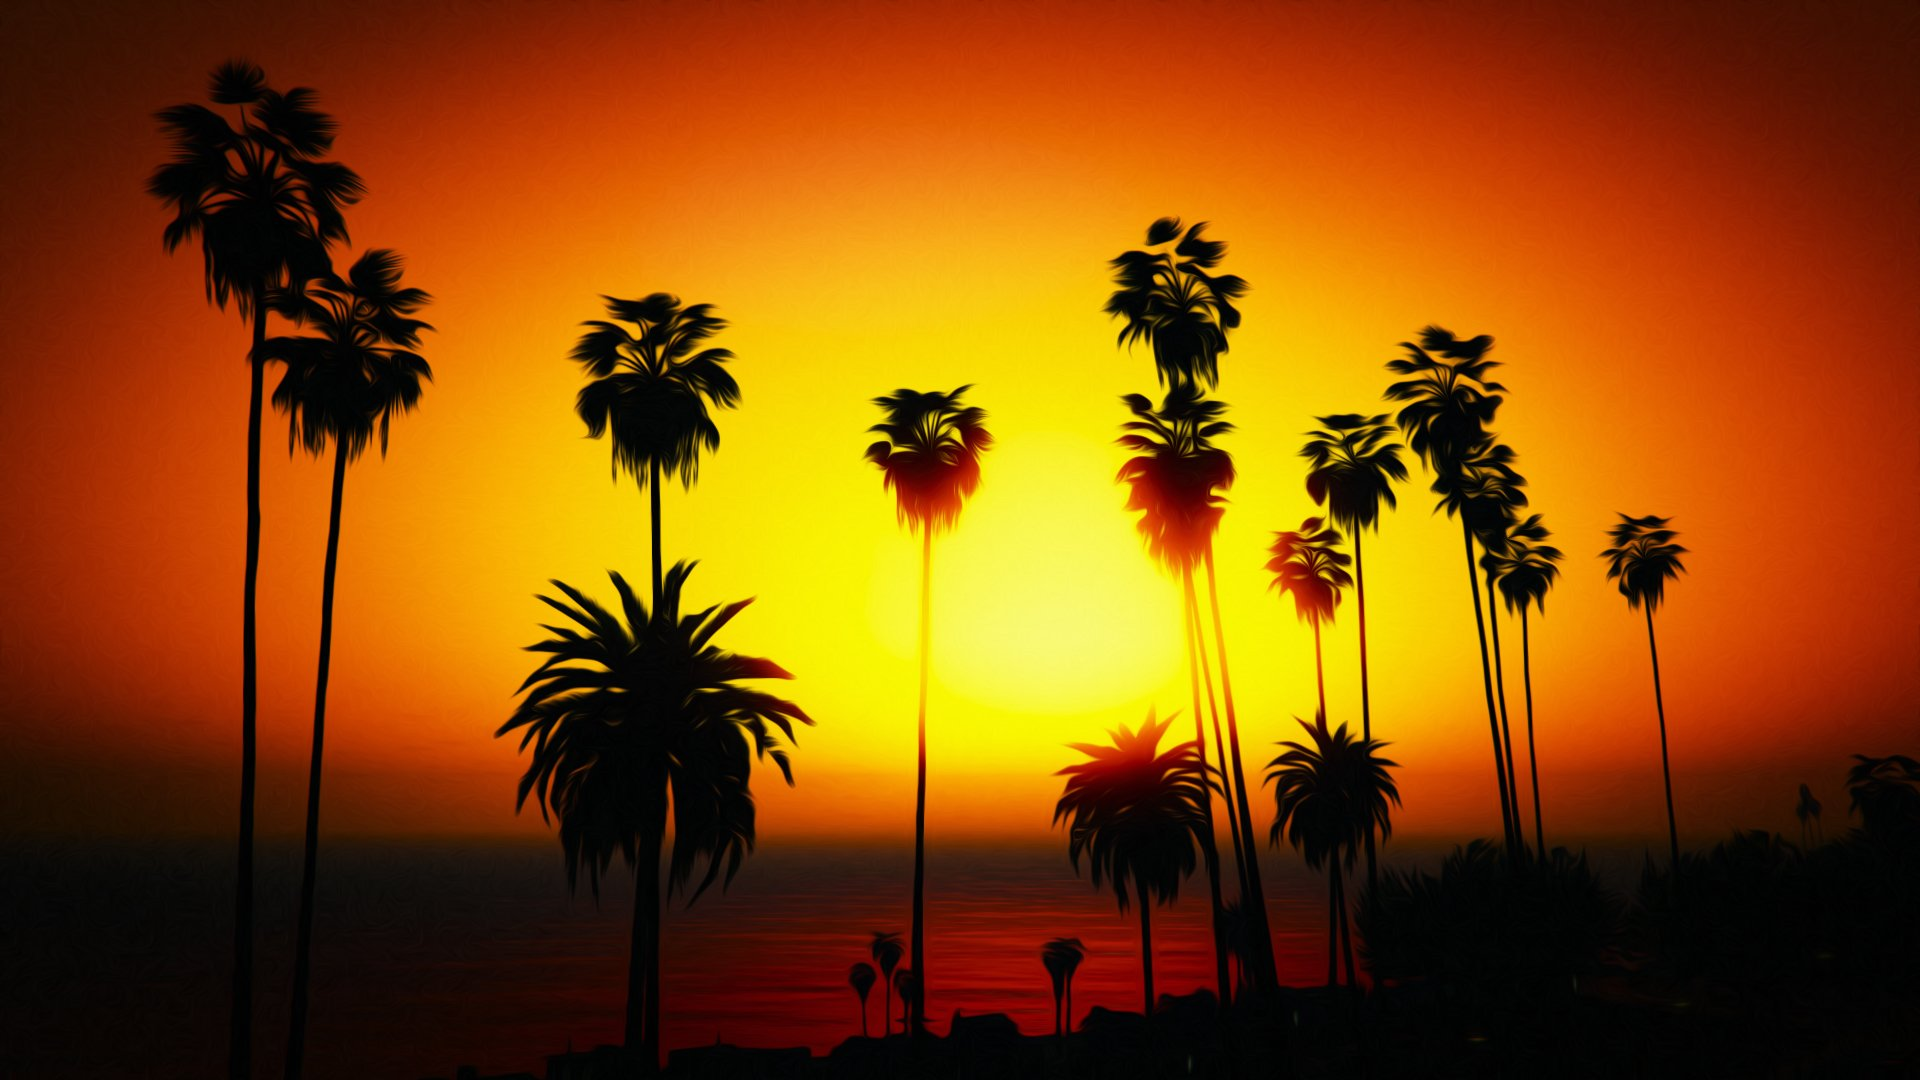 Grand Theft Auto V HD Wallpaper   Background Image   1920x1080   ID:853442 - Wallpaper Abyss